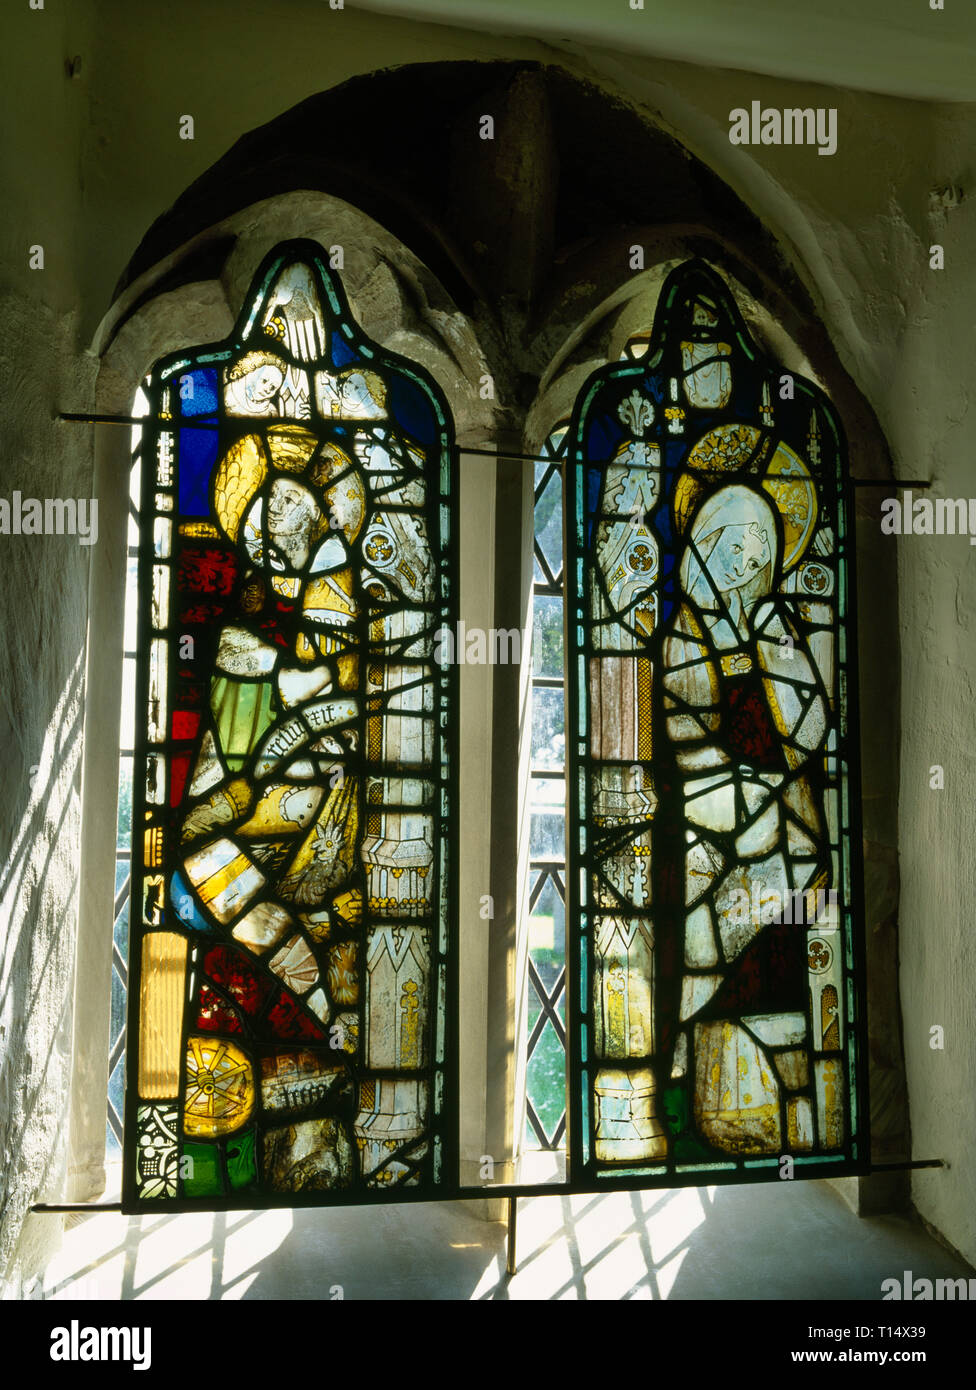 Panels of late Medieval (C15th) stained glass fragments removed from E window of Tremeirchion church, Wales, in 1858/9 & placed in the vestry windows - Stock Image